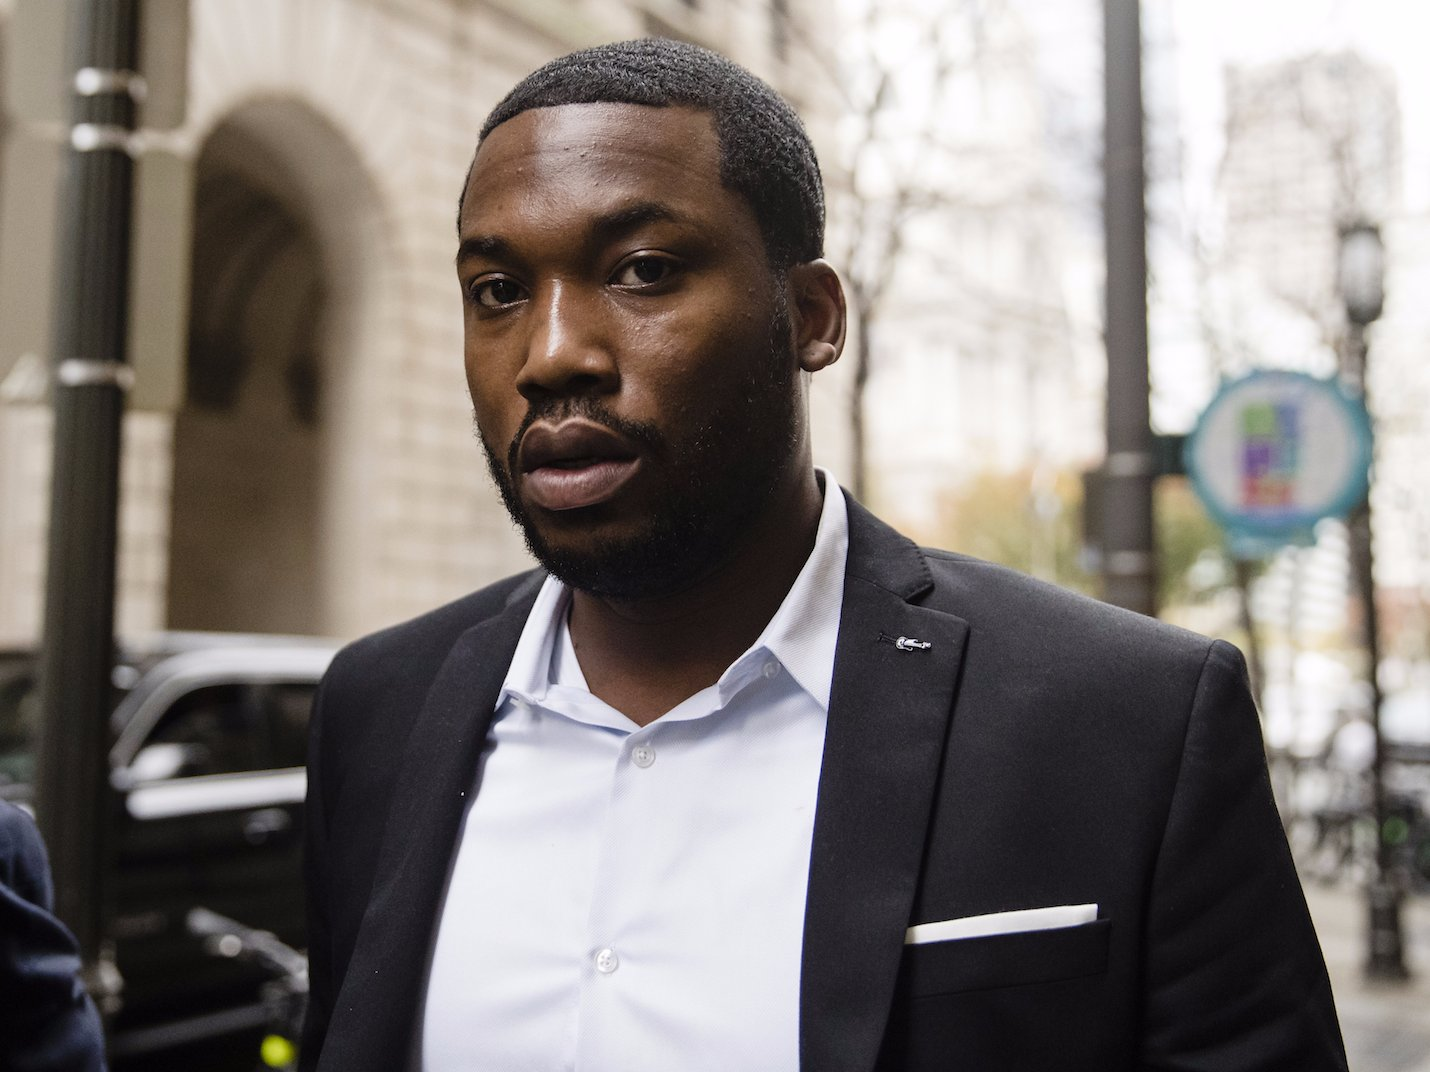 Pennsylvania Governor Tom Wolf Starts Petition To Save Meek Mill